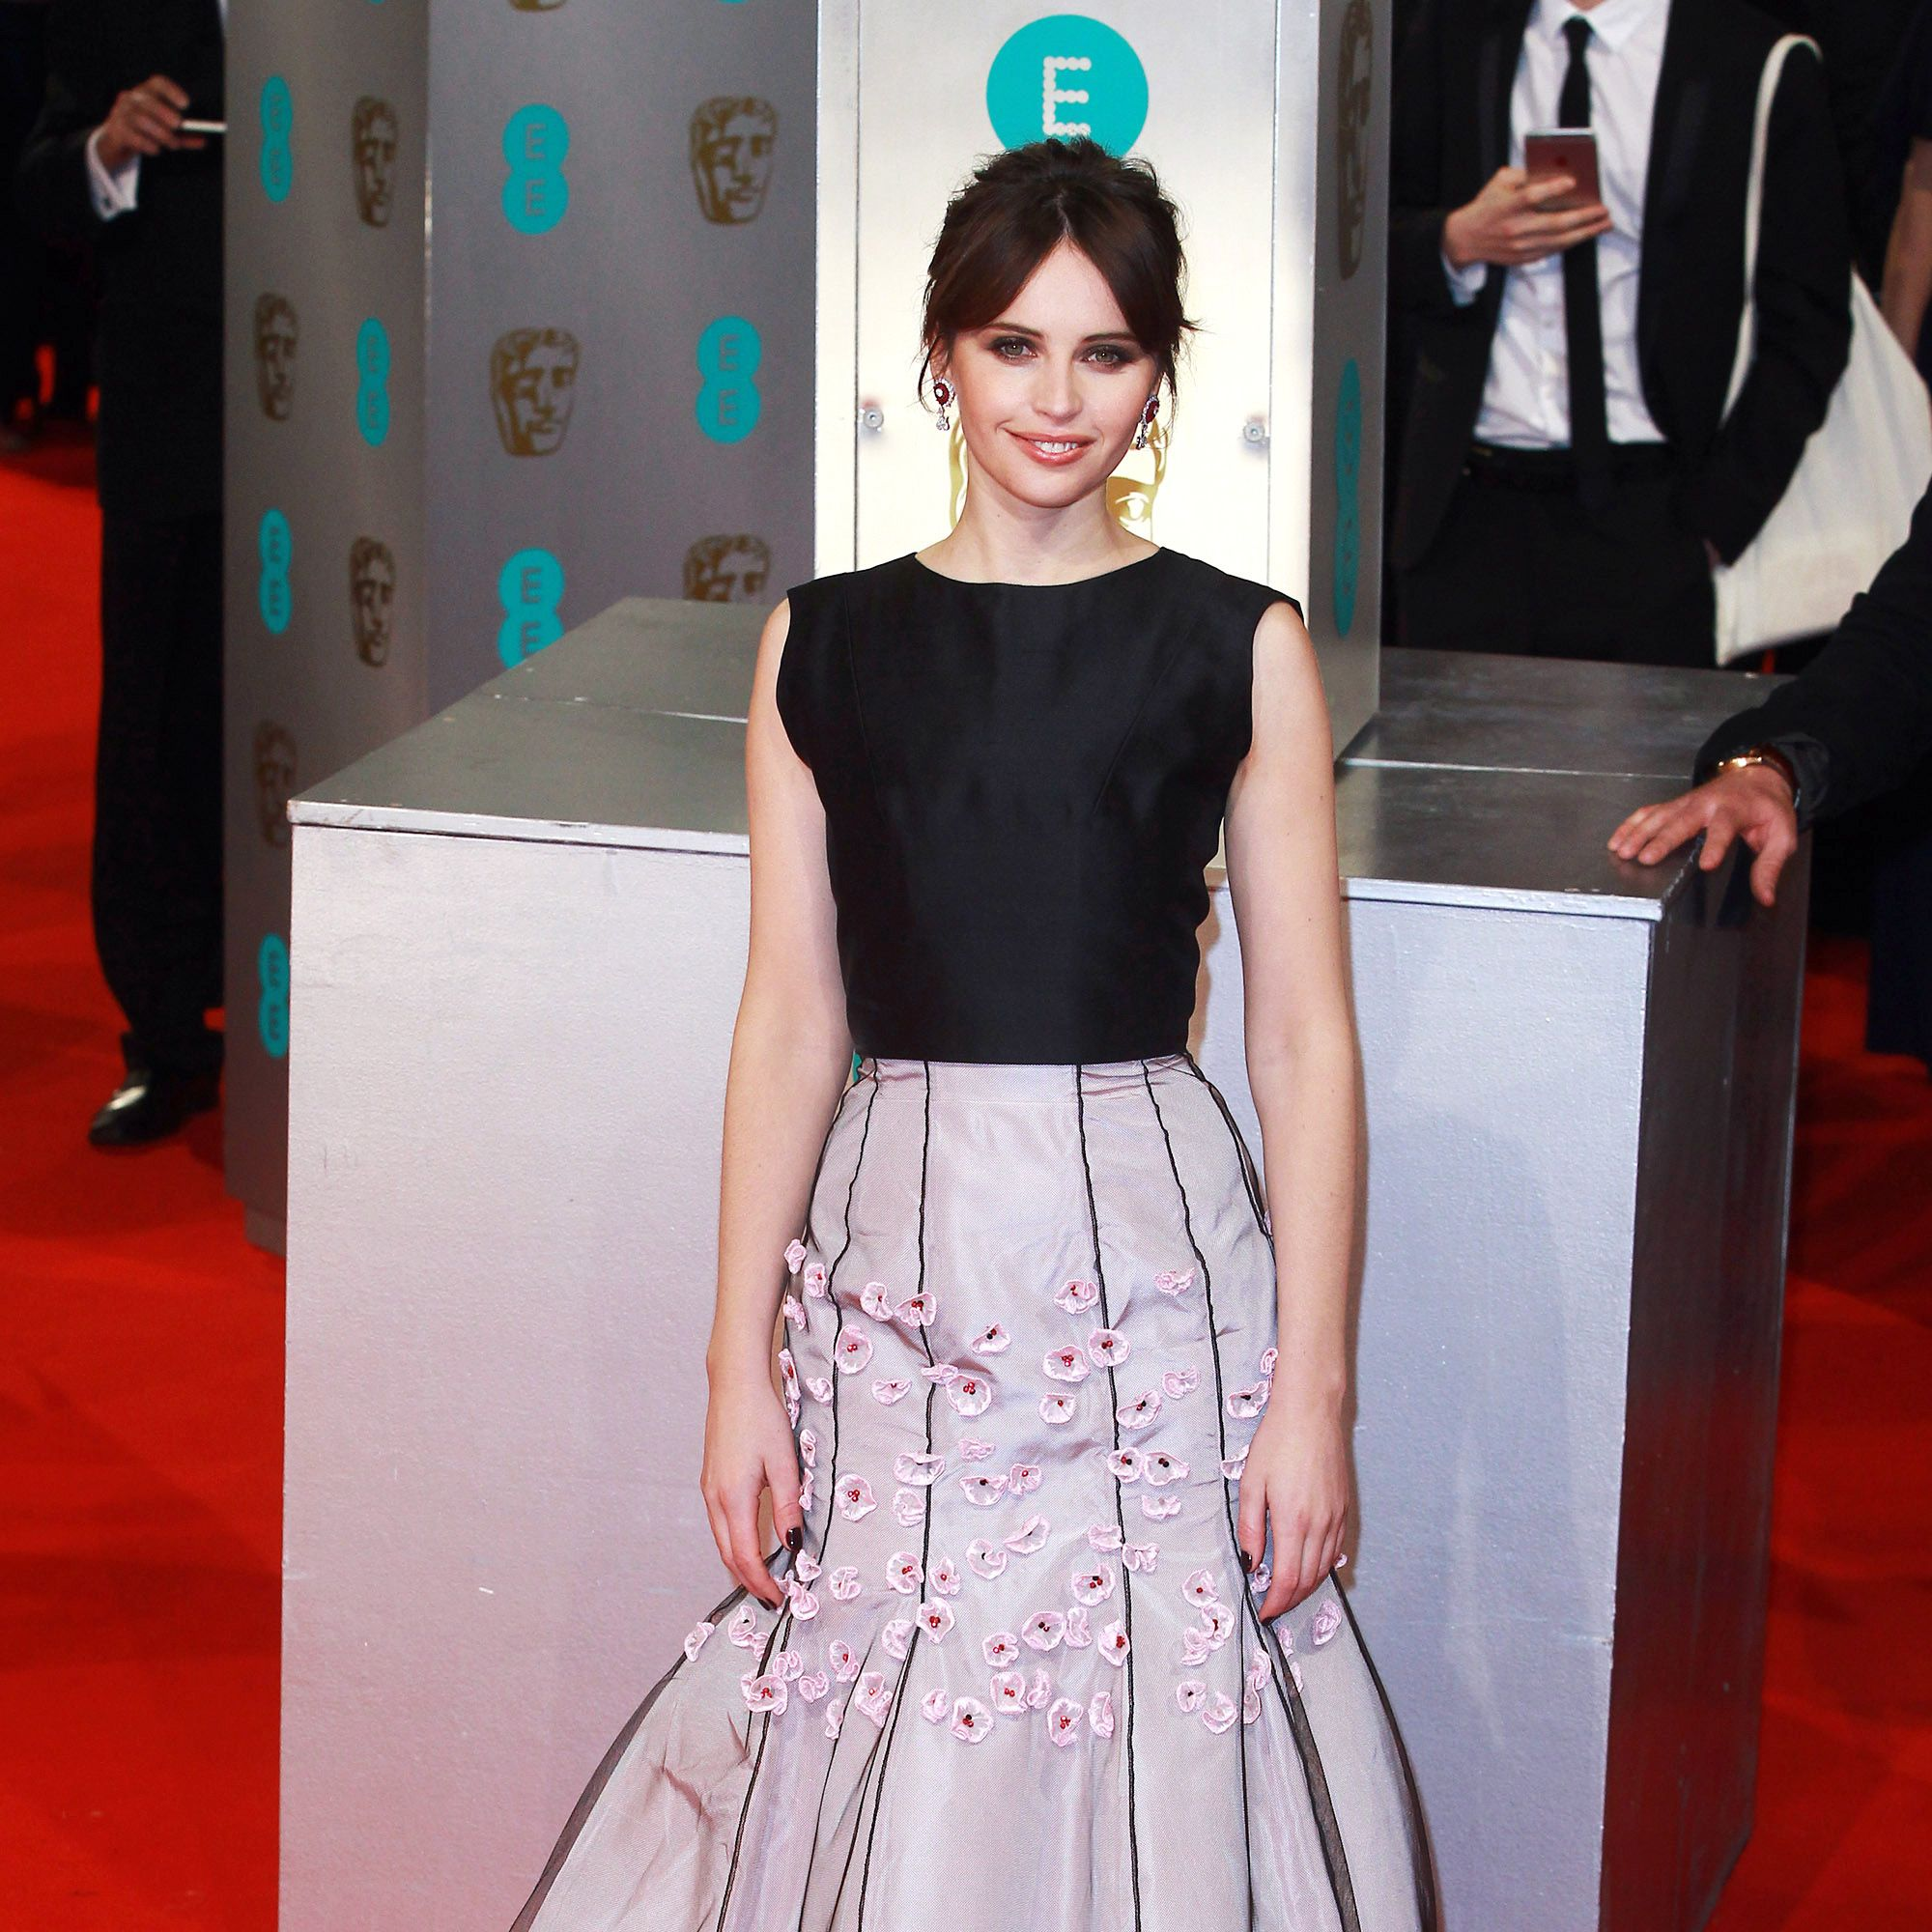 LONDON, UNITED KINGDOM - FEBRUARY 08: Felicity Jones attends the EE British Academy Film Awards at The Royal Opera House on February 8, 2015 in London, England. (Photo by Fred Duval/FilmMagic)